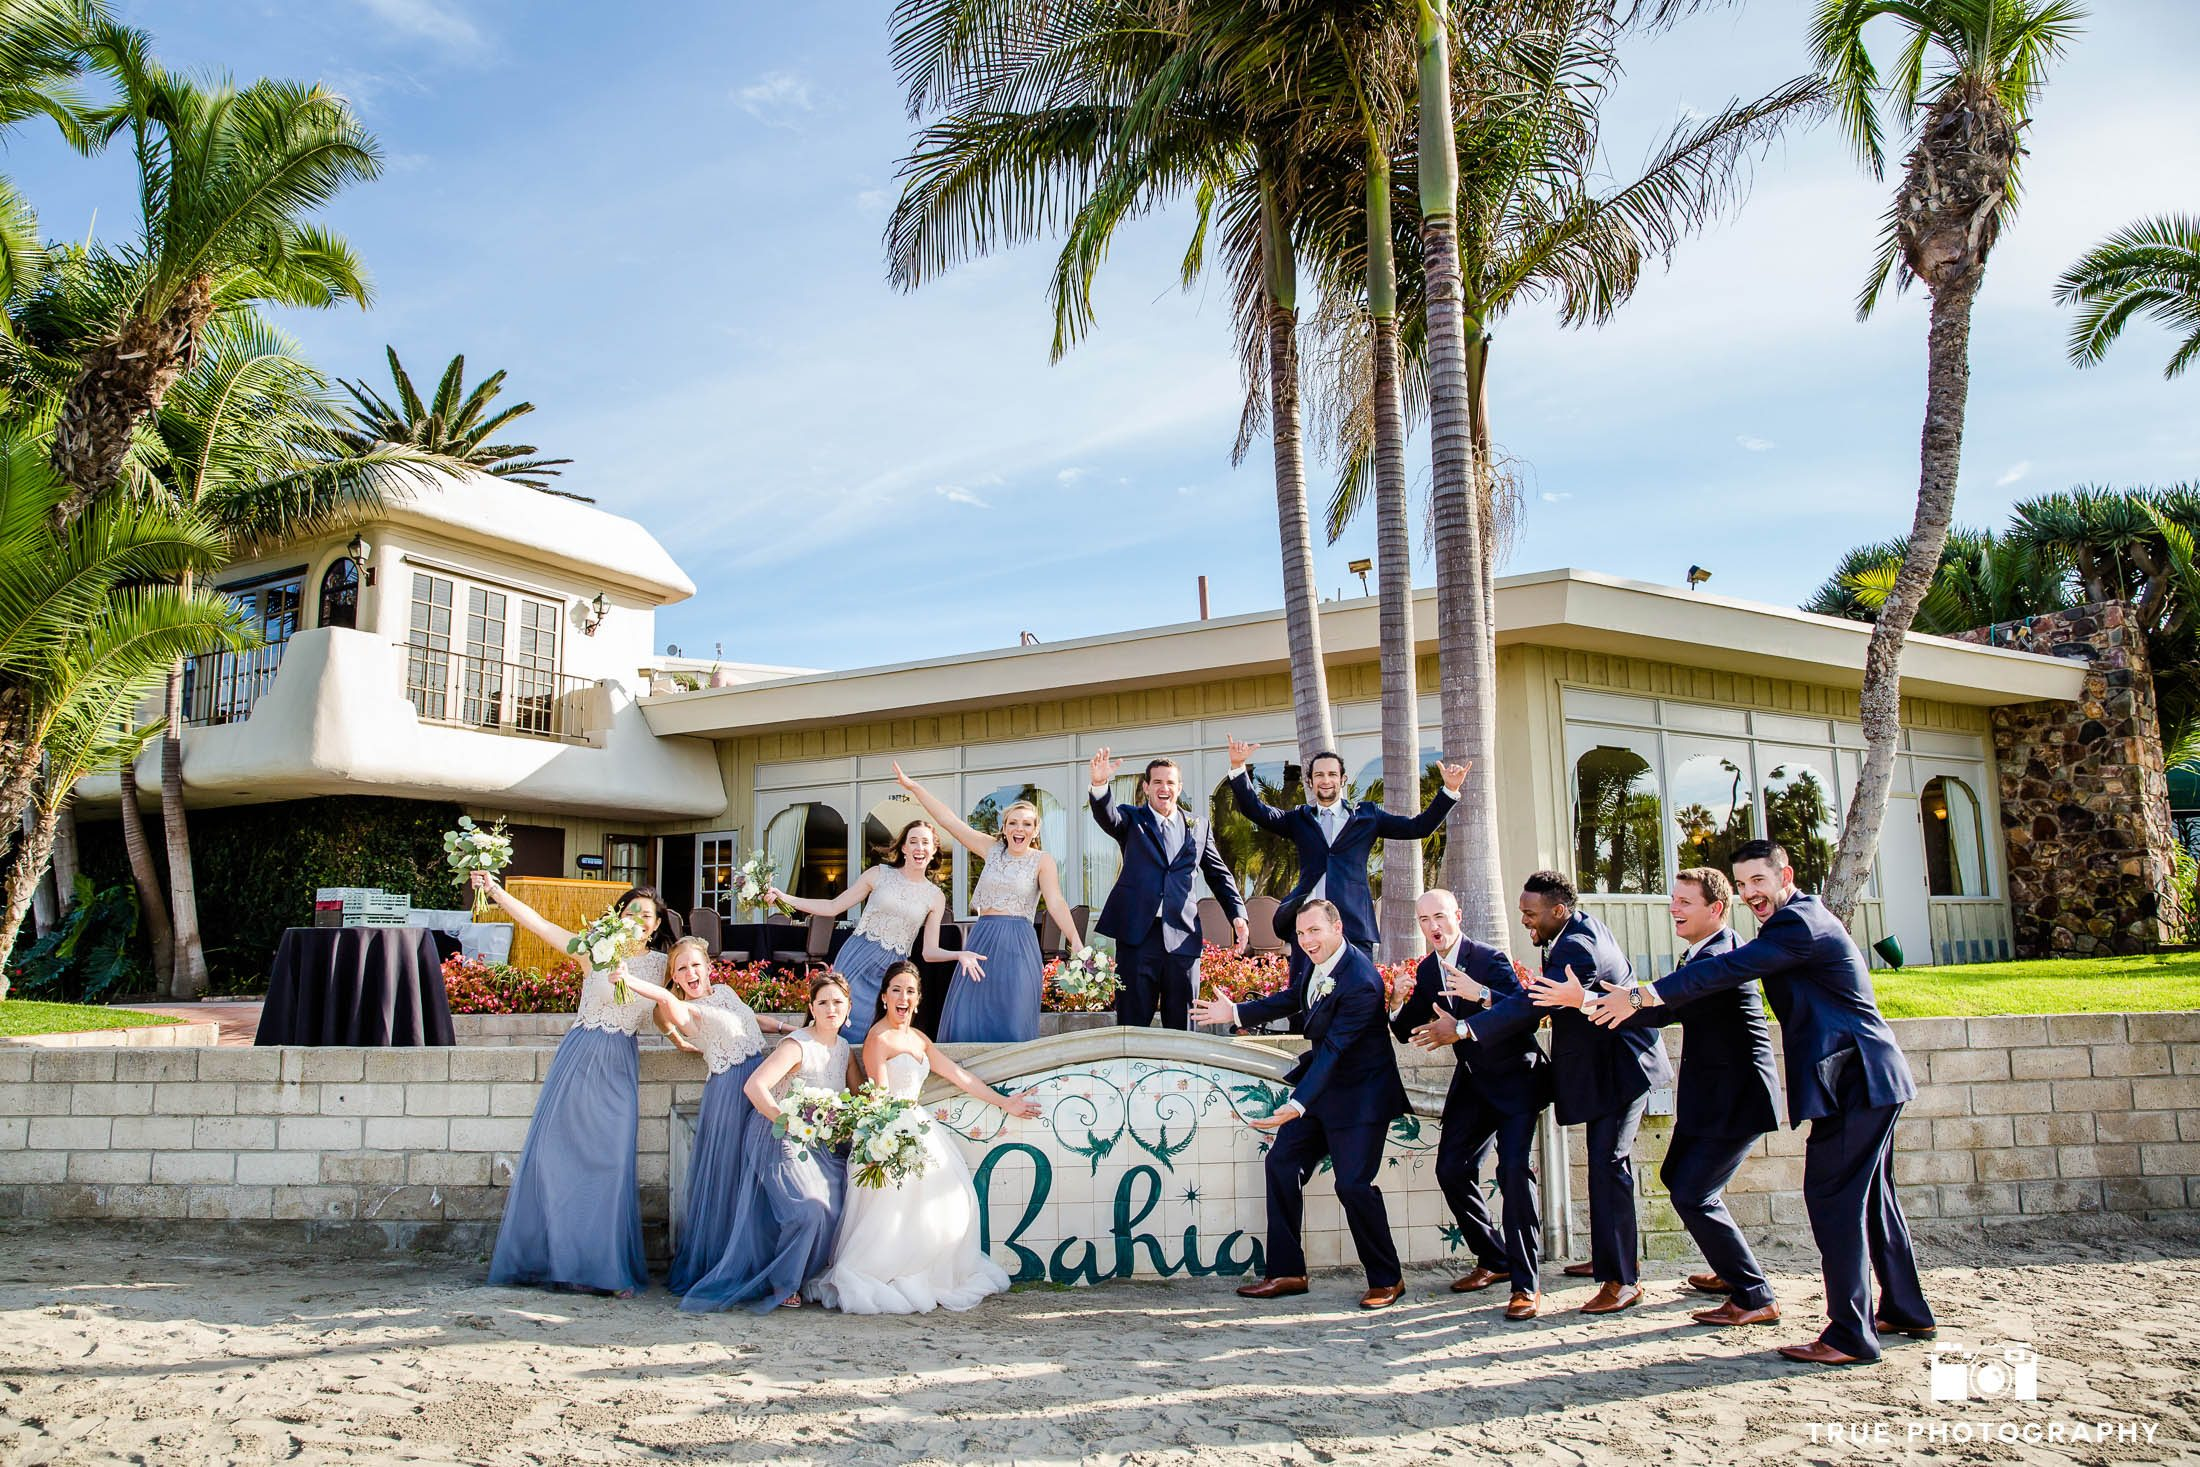 Wedding bridal party cheer in front of sign at Bahia Resort